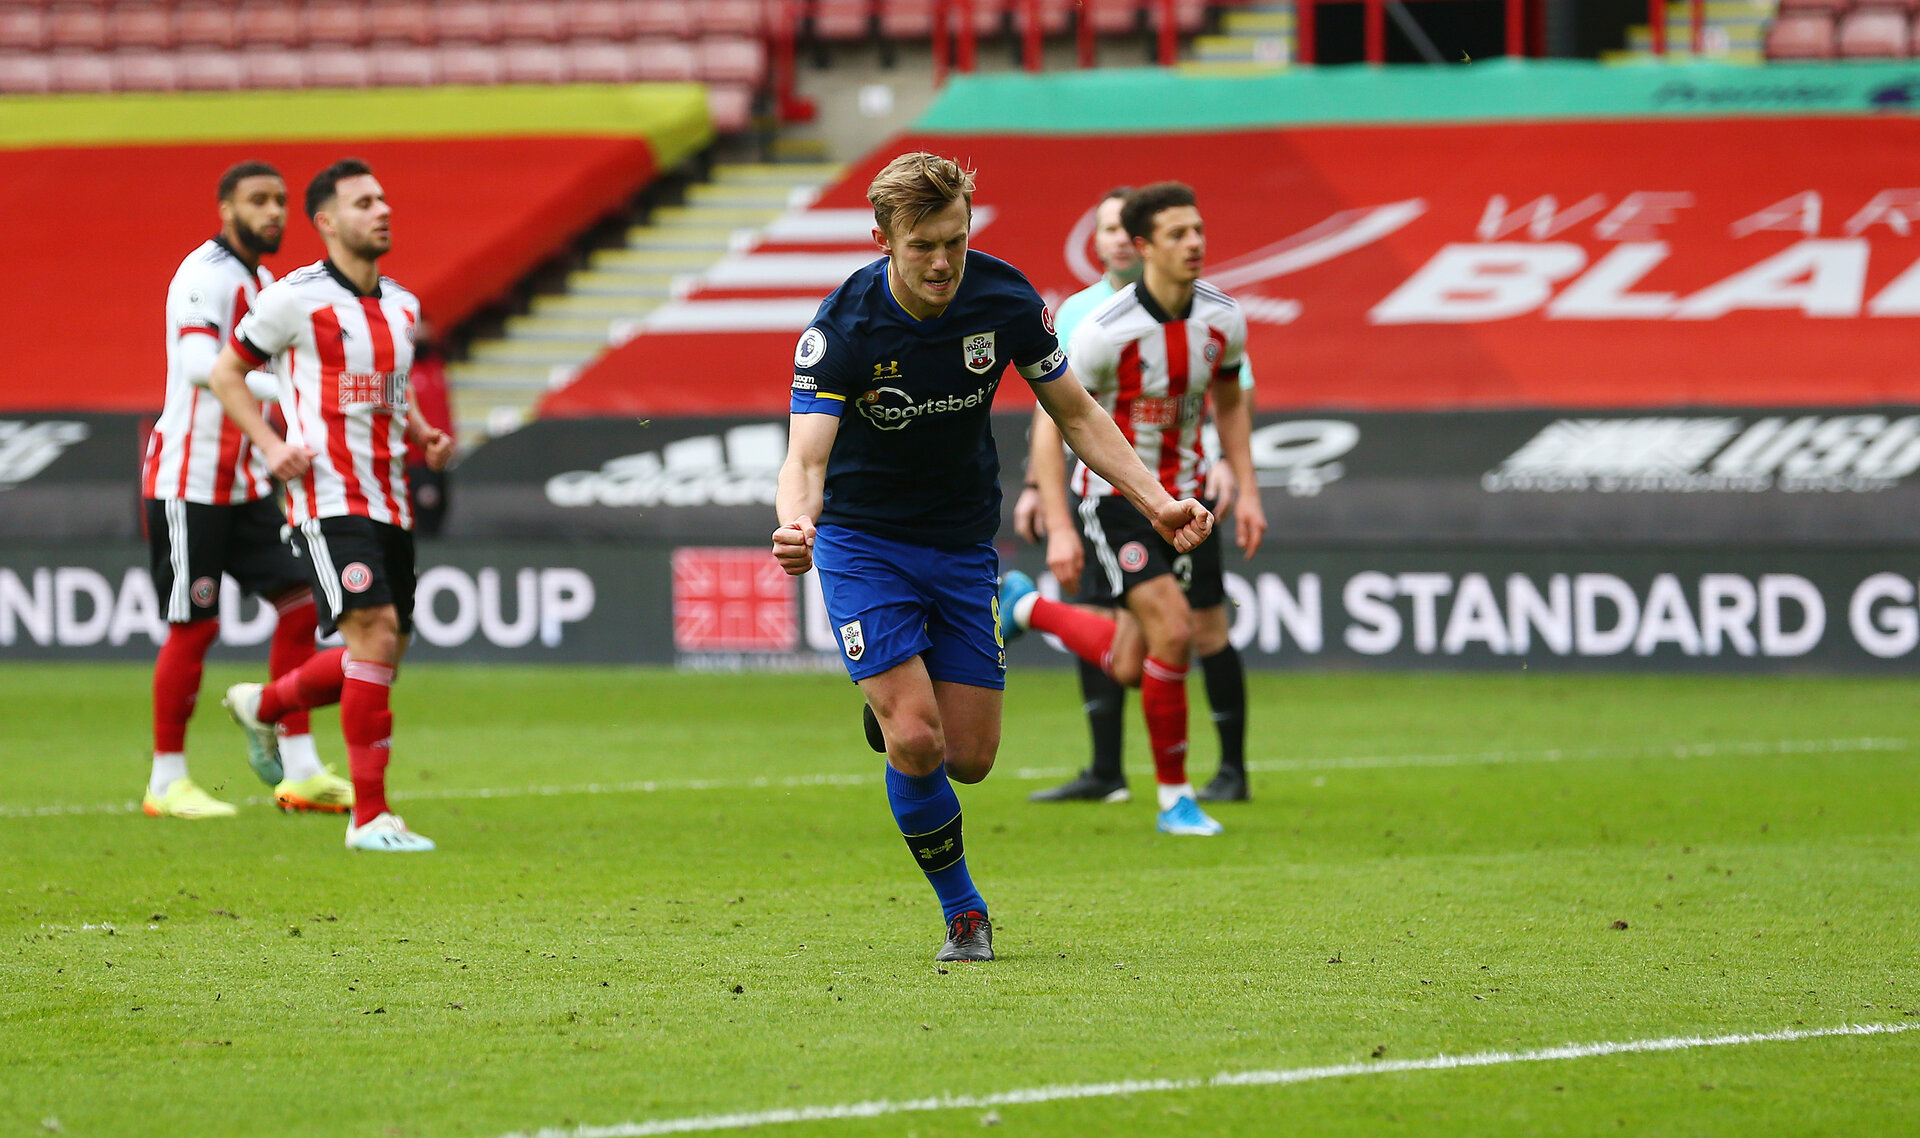 SHEFFIELD, ENGLAND - MARCH 06: James Ward-Prowse of Southampton celebrates after scoring from the penalty spot during the Premier League match between Sheffield United and Southampton at Bramall Lane on March 06, 2021 in Sheffield, England. Sporting stadiums around the UK remain under strict restrictions due to the Coronavirus Pandemic as Government social distancing laws prohibit fans inside venues resulting in games being played behind closed doors (Photo by Matt Watson/Southampton FC via Getty Images)